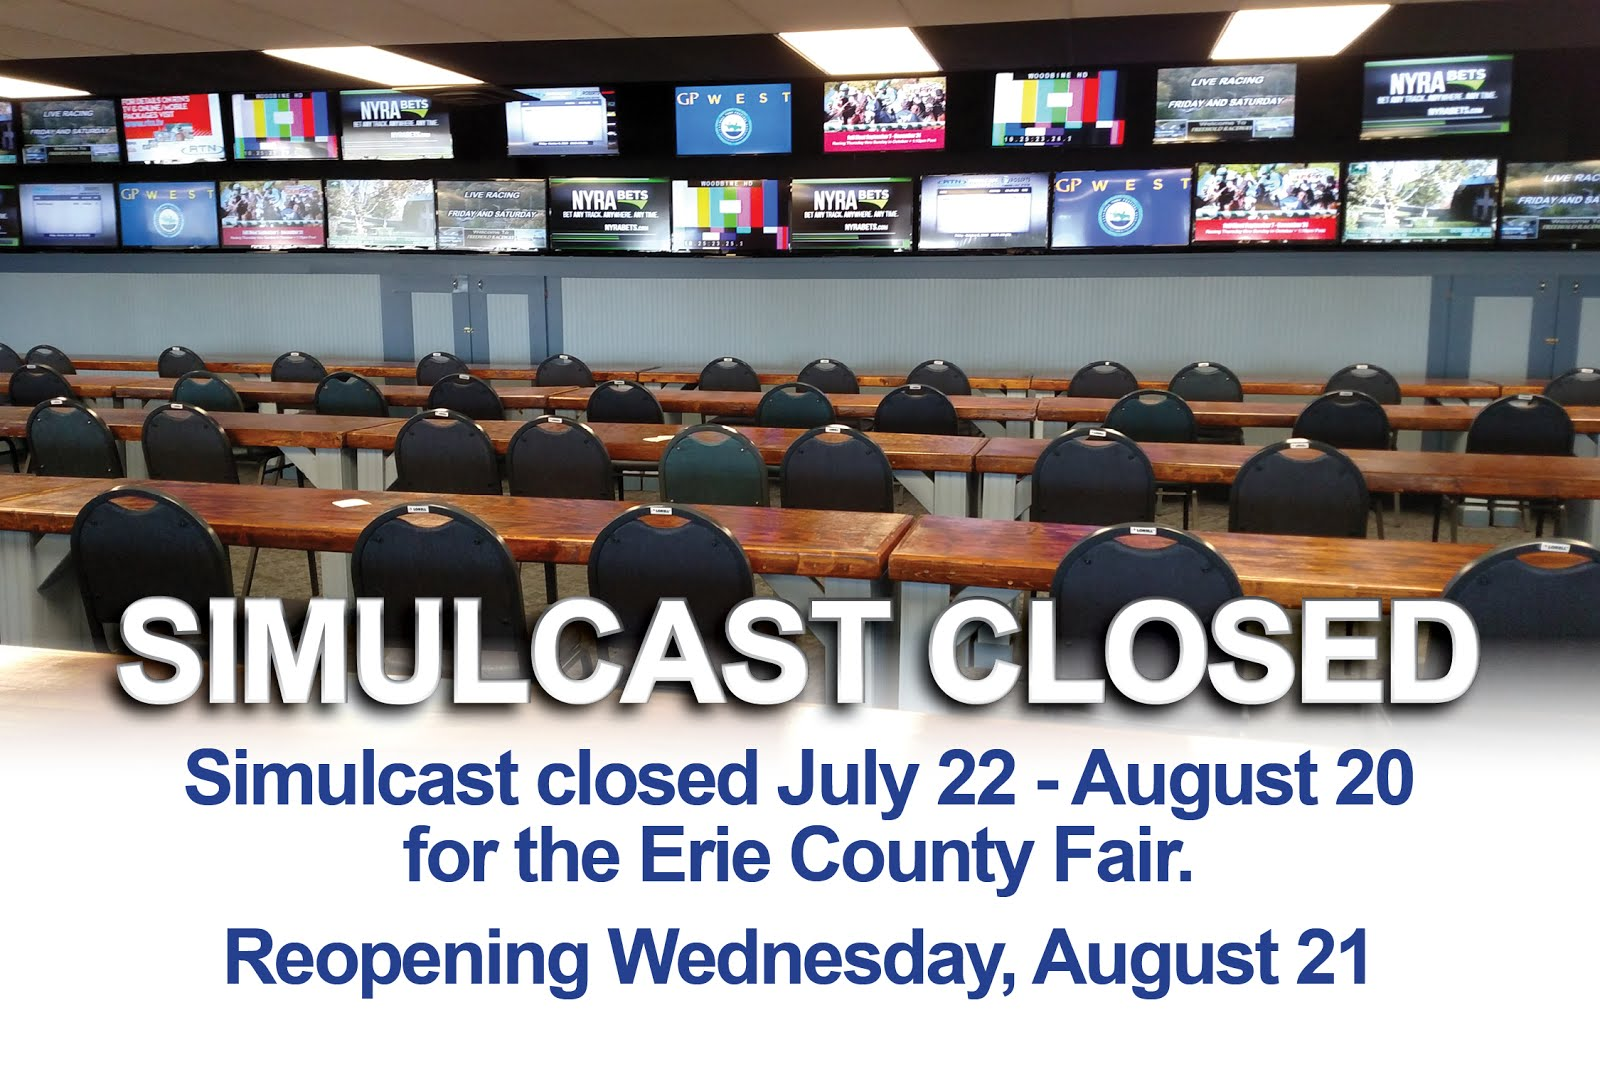 Simulcast to close for ECF